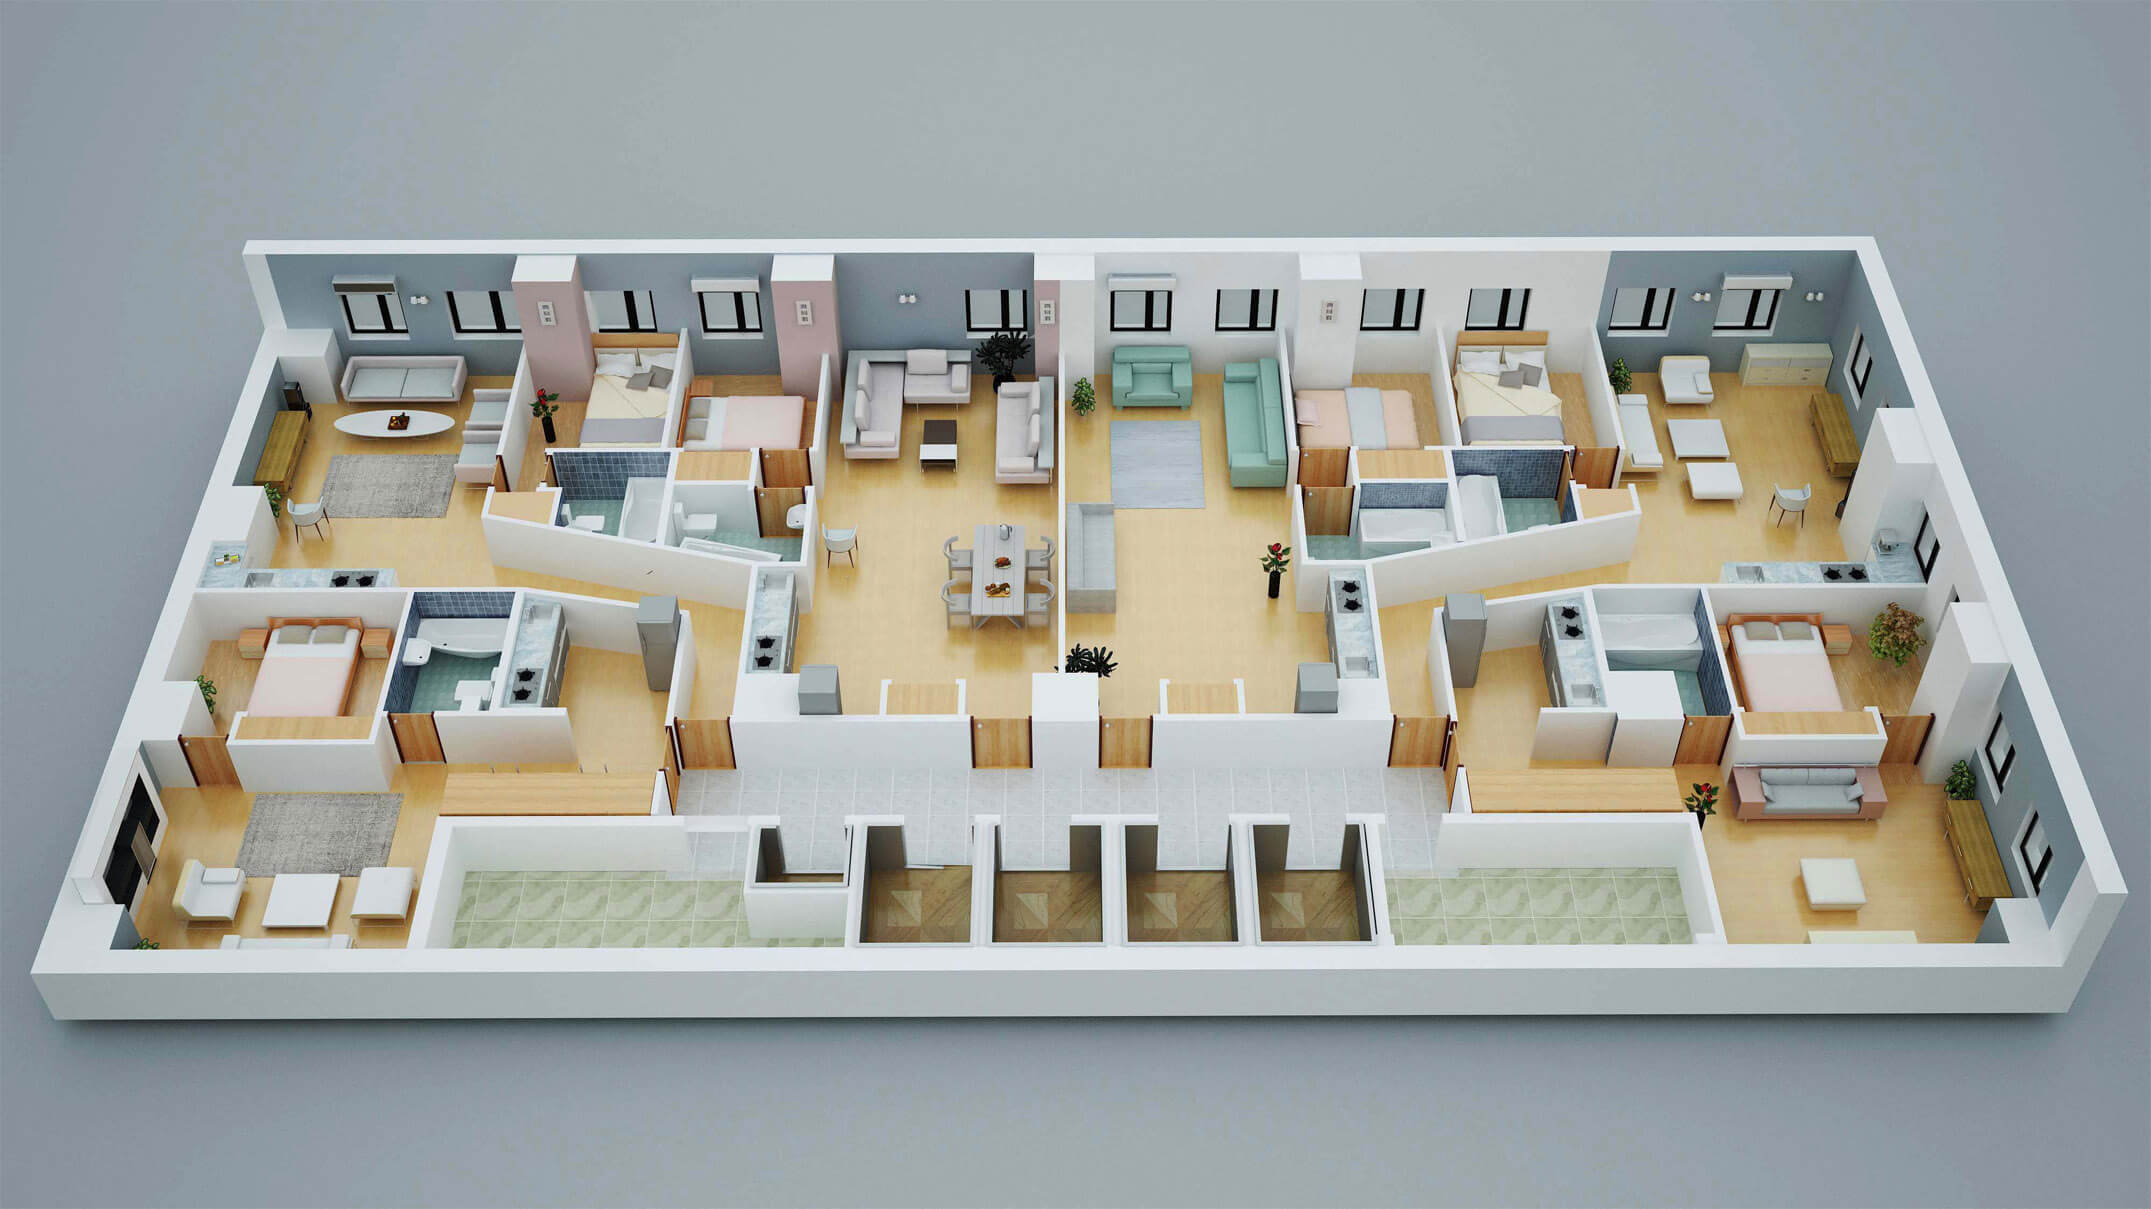 3d floor plan in united states